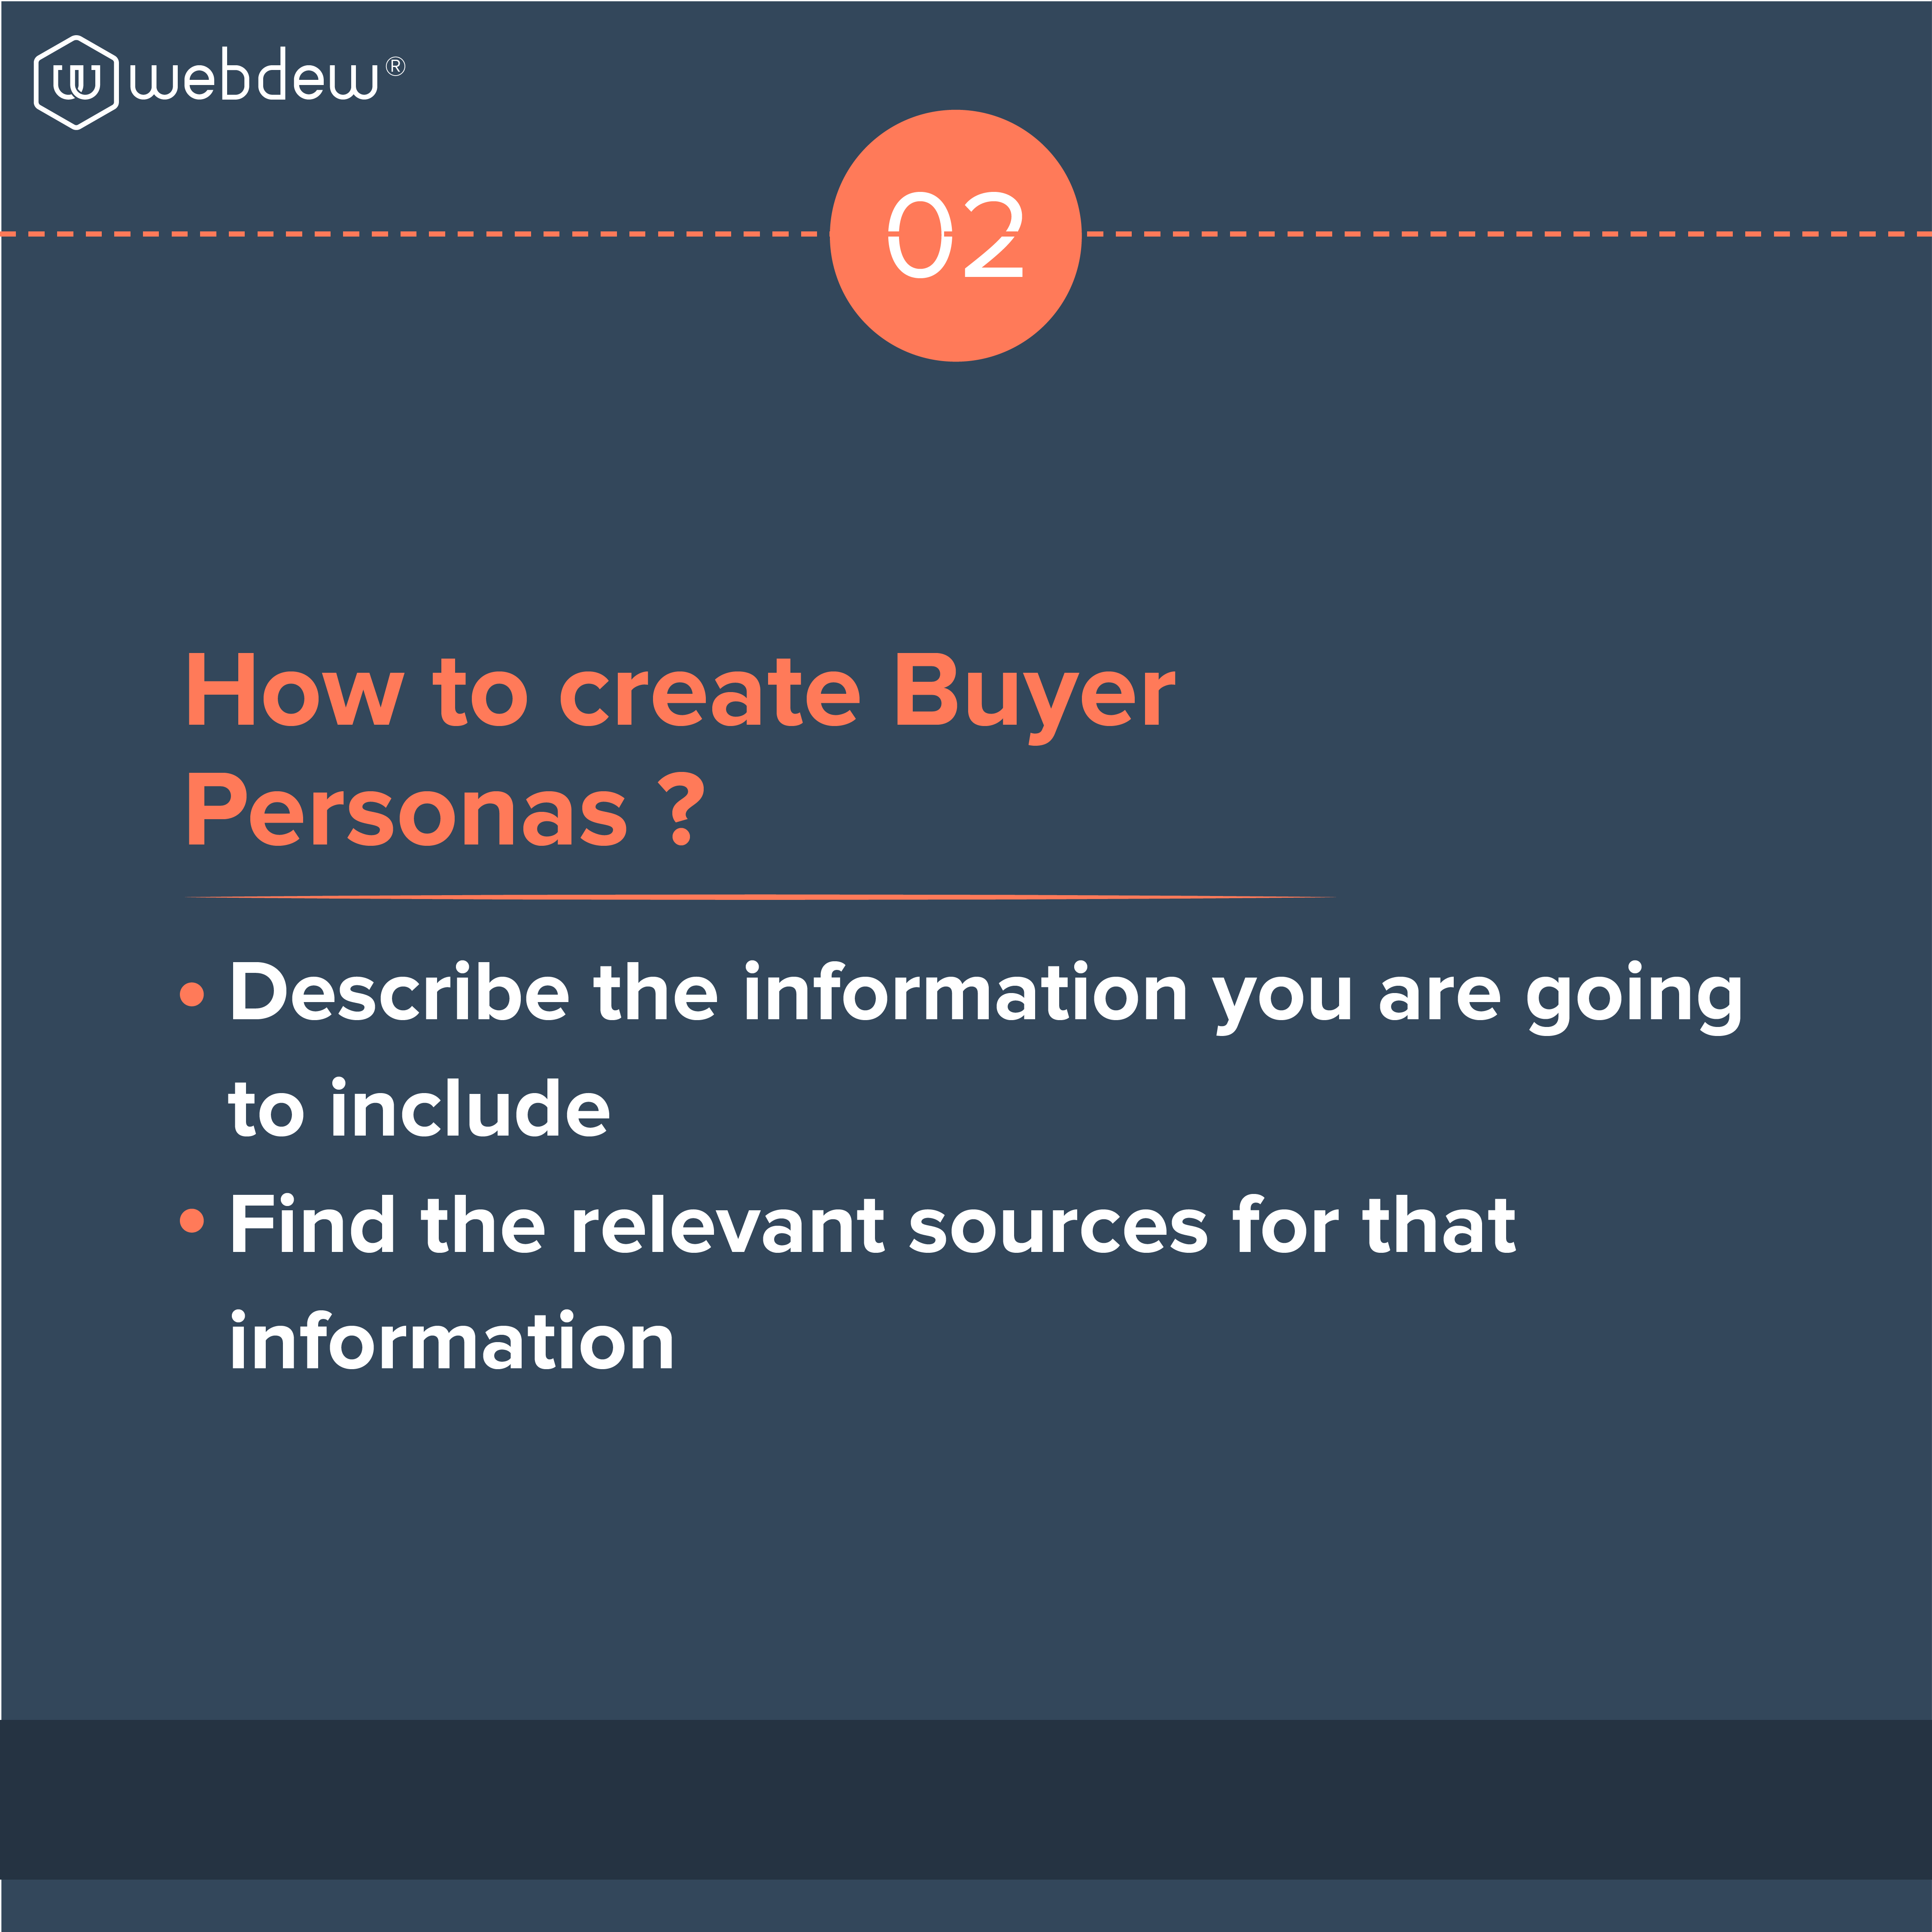 2. learn how to create buyer personas in hubspot with this easy guide-03